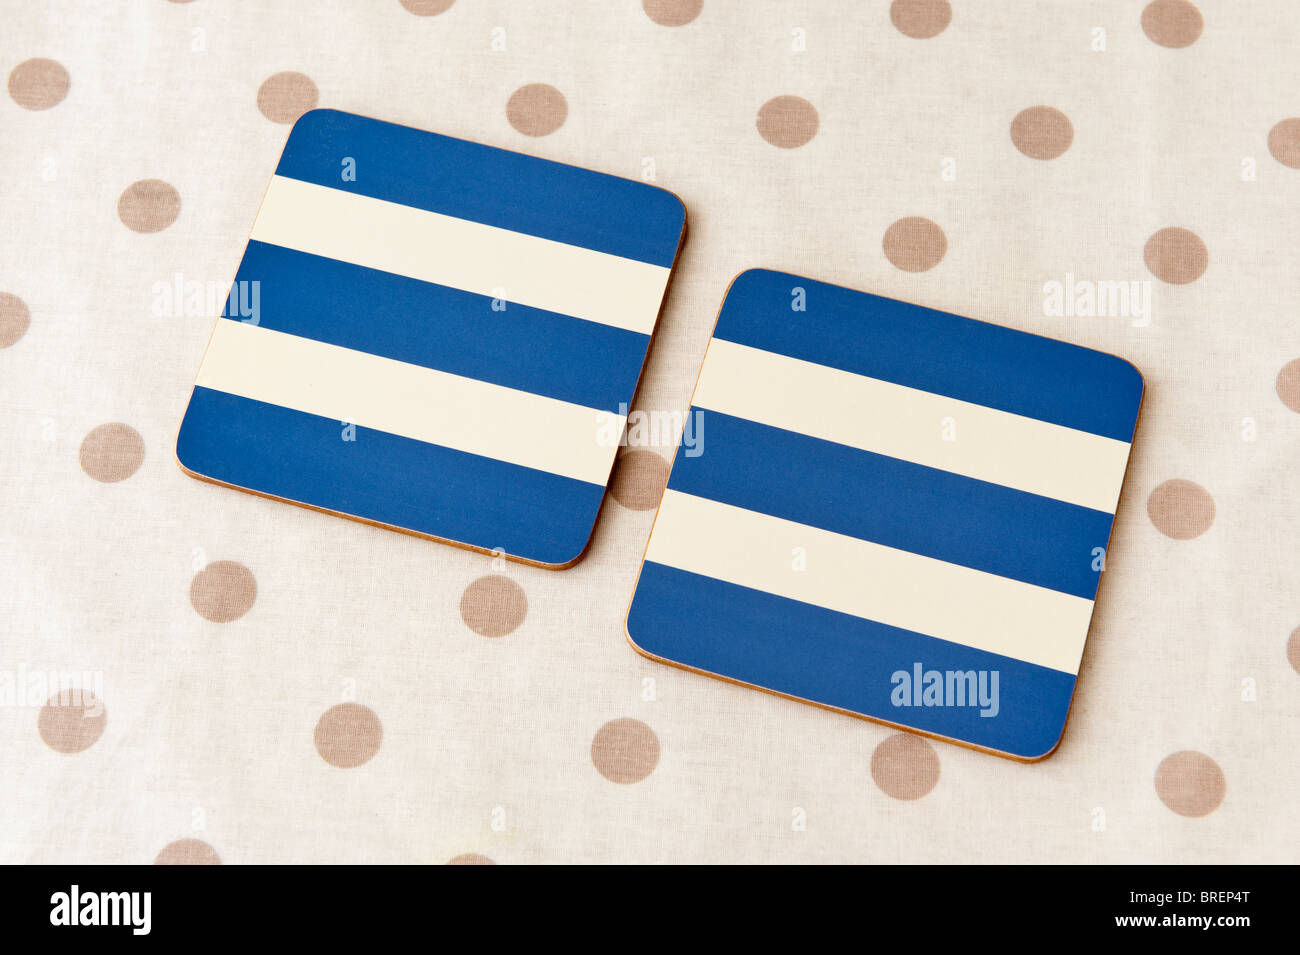 Two blue and cream striped coaster place mats on a cream and brown spotted plastic tablecloth - Stock Image